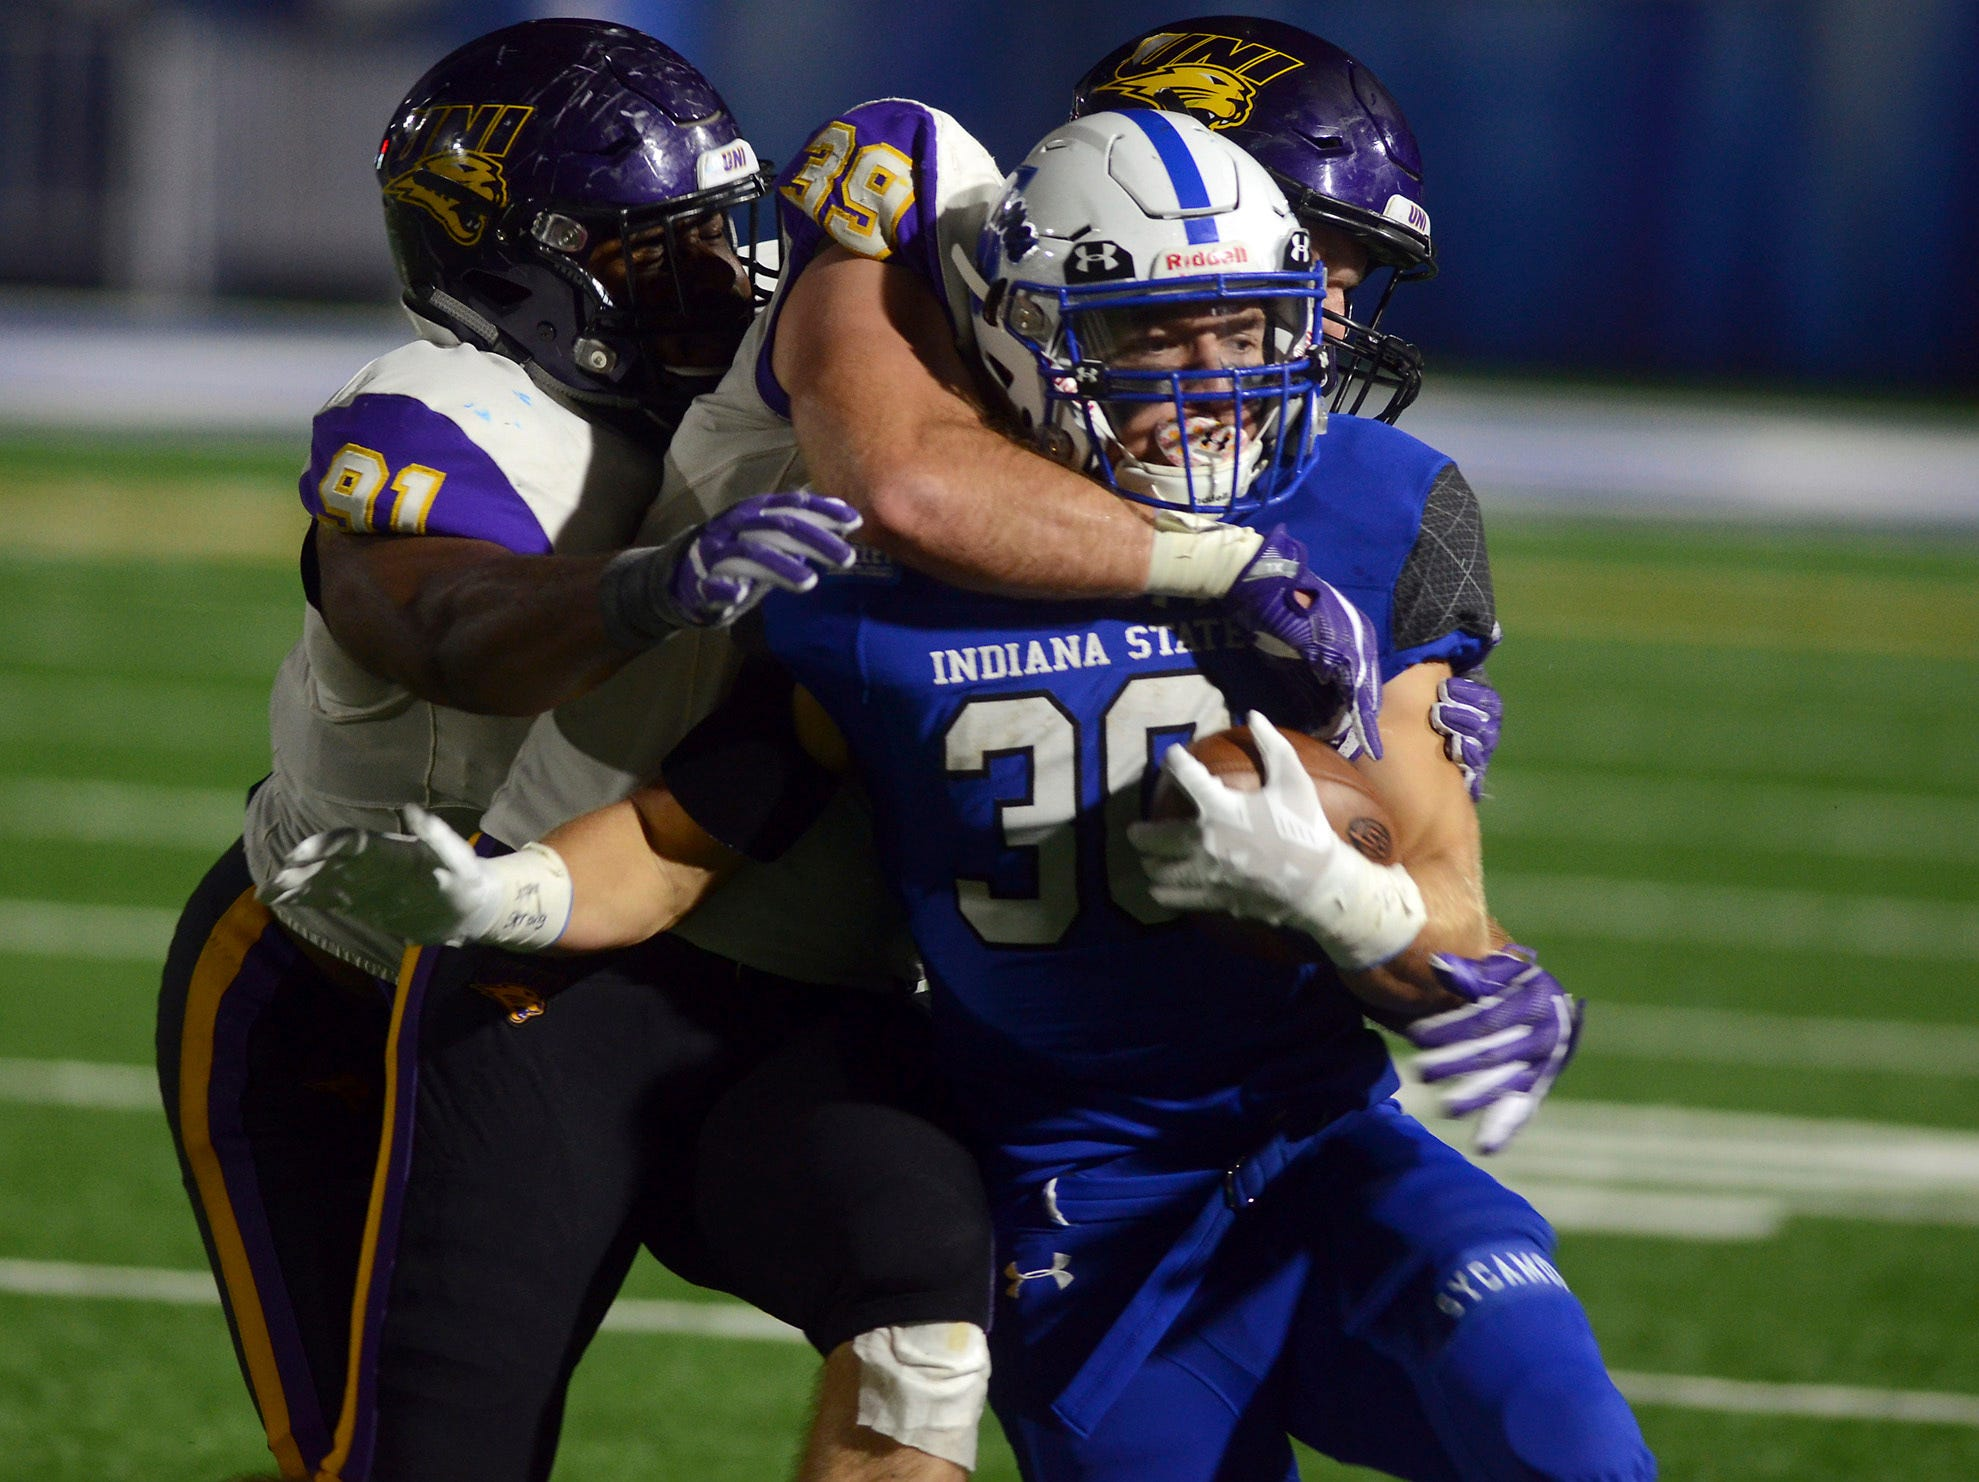 Indiana State running back Titus McCoy is wrapped up by two Northern Iowa defenders during an NCAA college football game Thursday, Sept. 27, 2018, in Terre Haute, Ind.